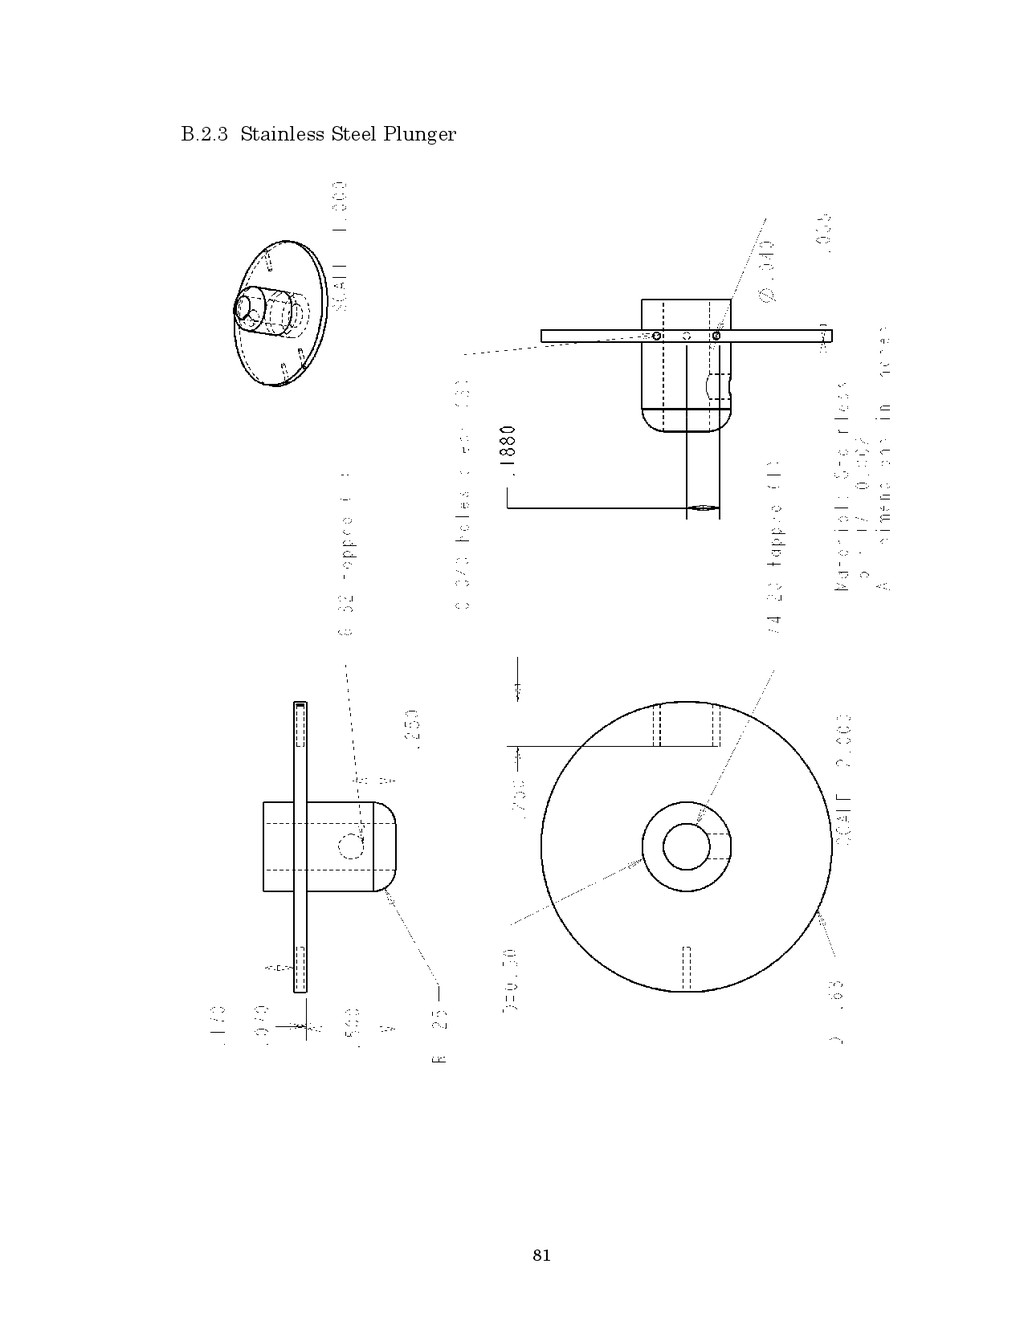 81 B.2.3 Stainless Steel Plunger